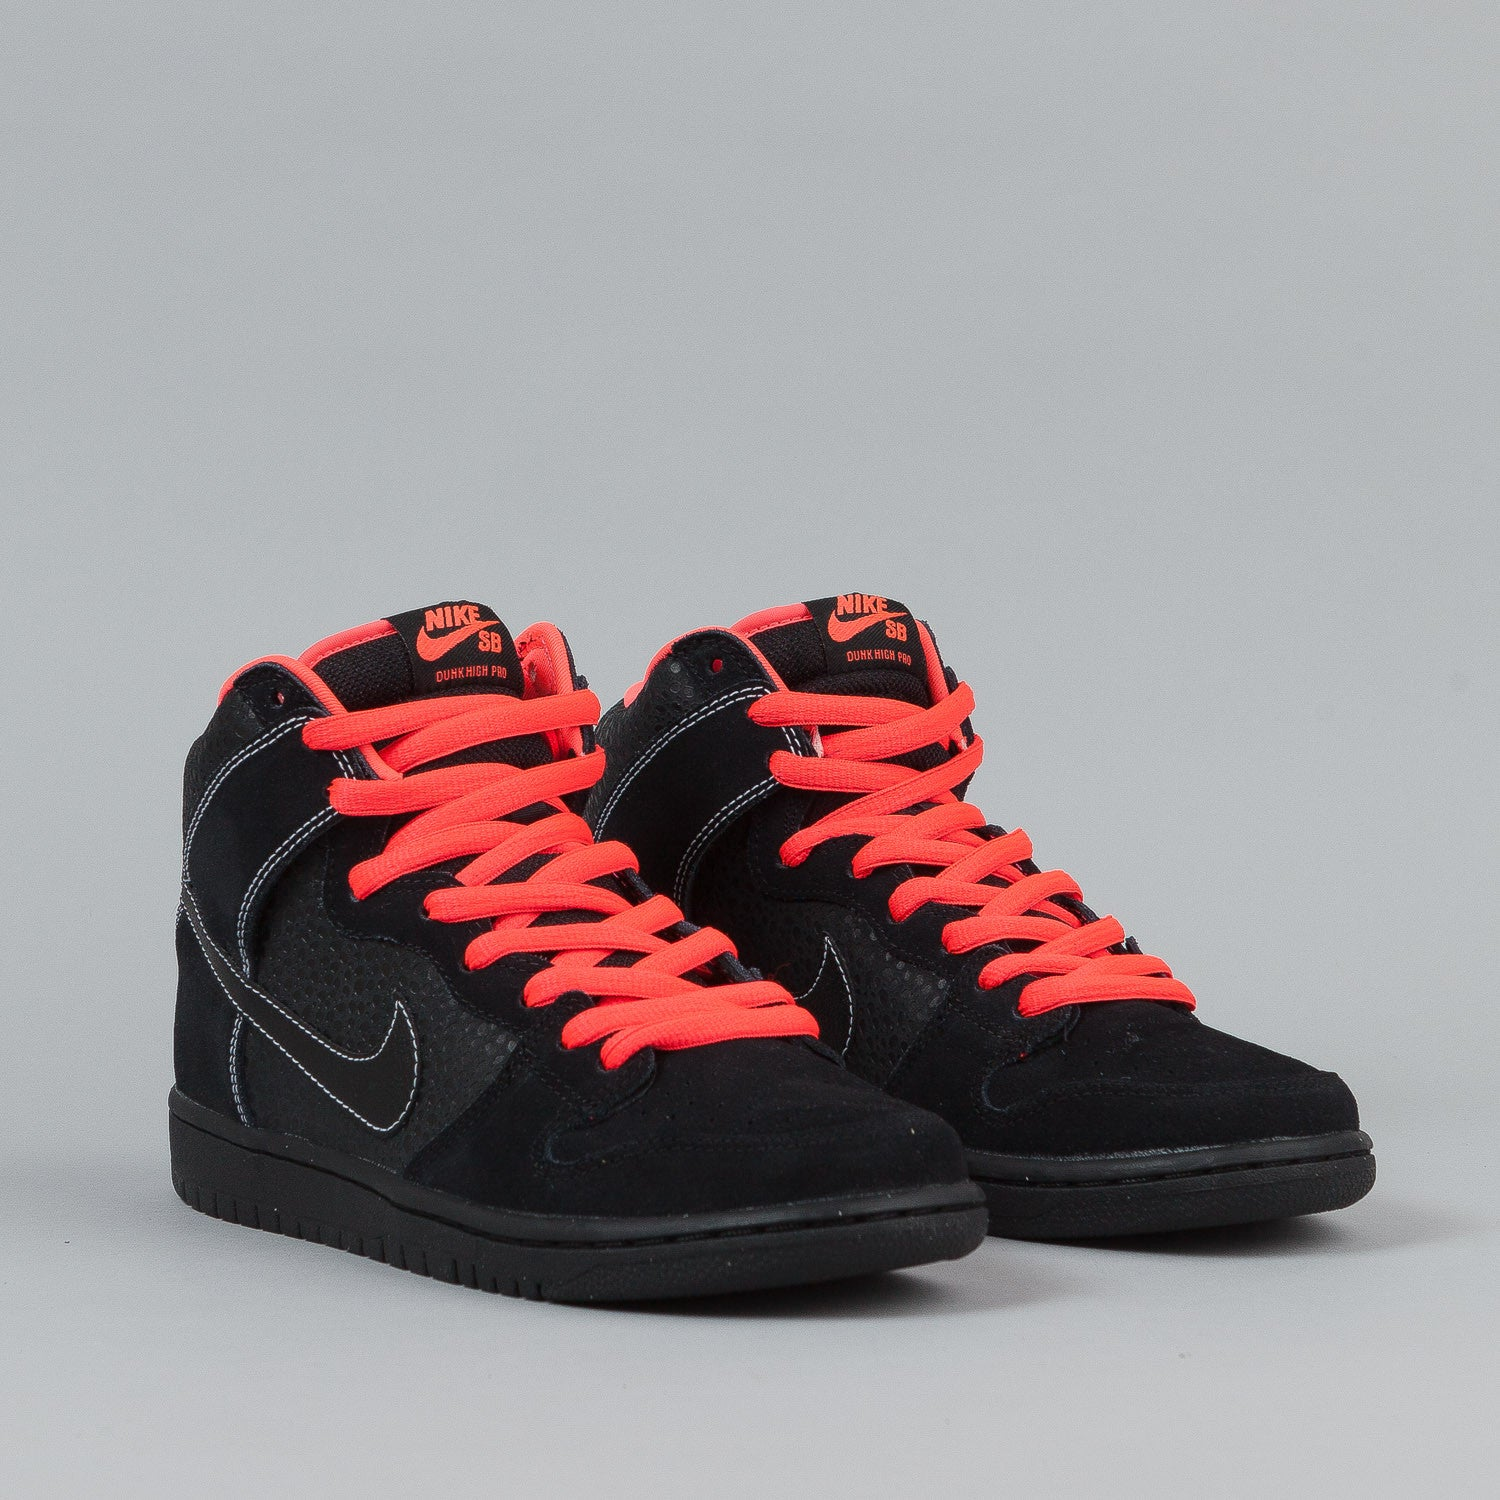 Nike SB Dunk High Pro Shoes - Black / Black / Atomic Red / White